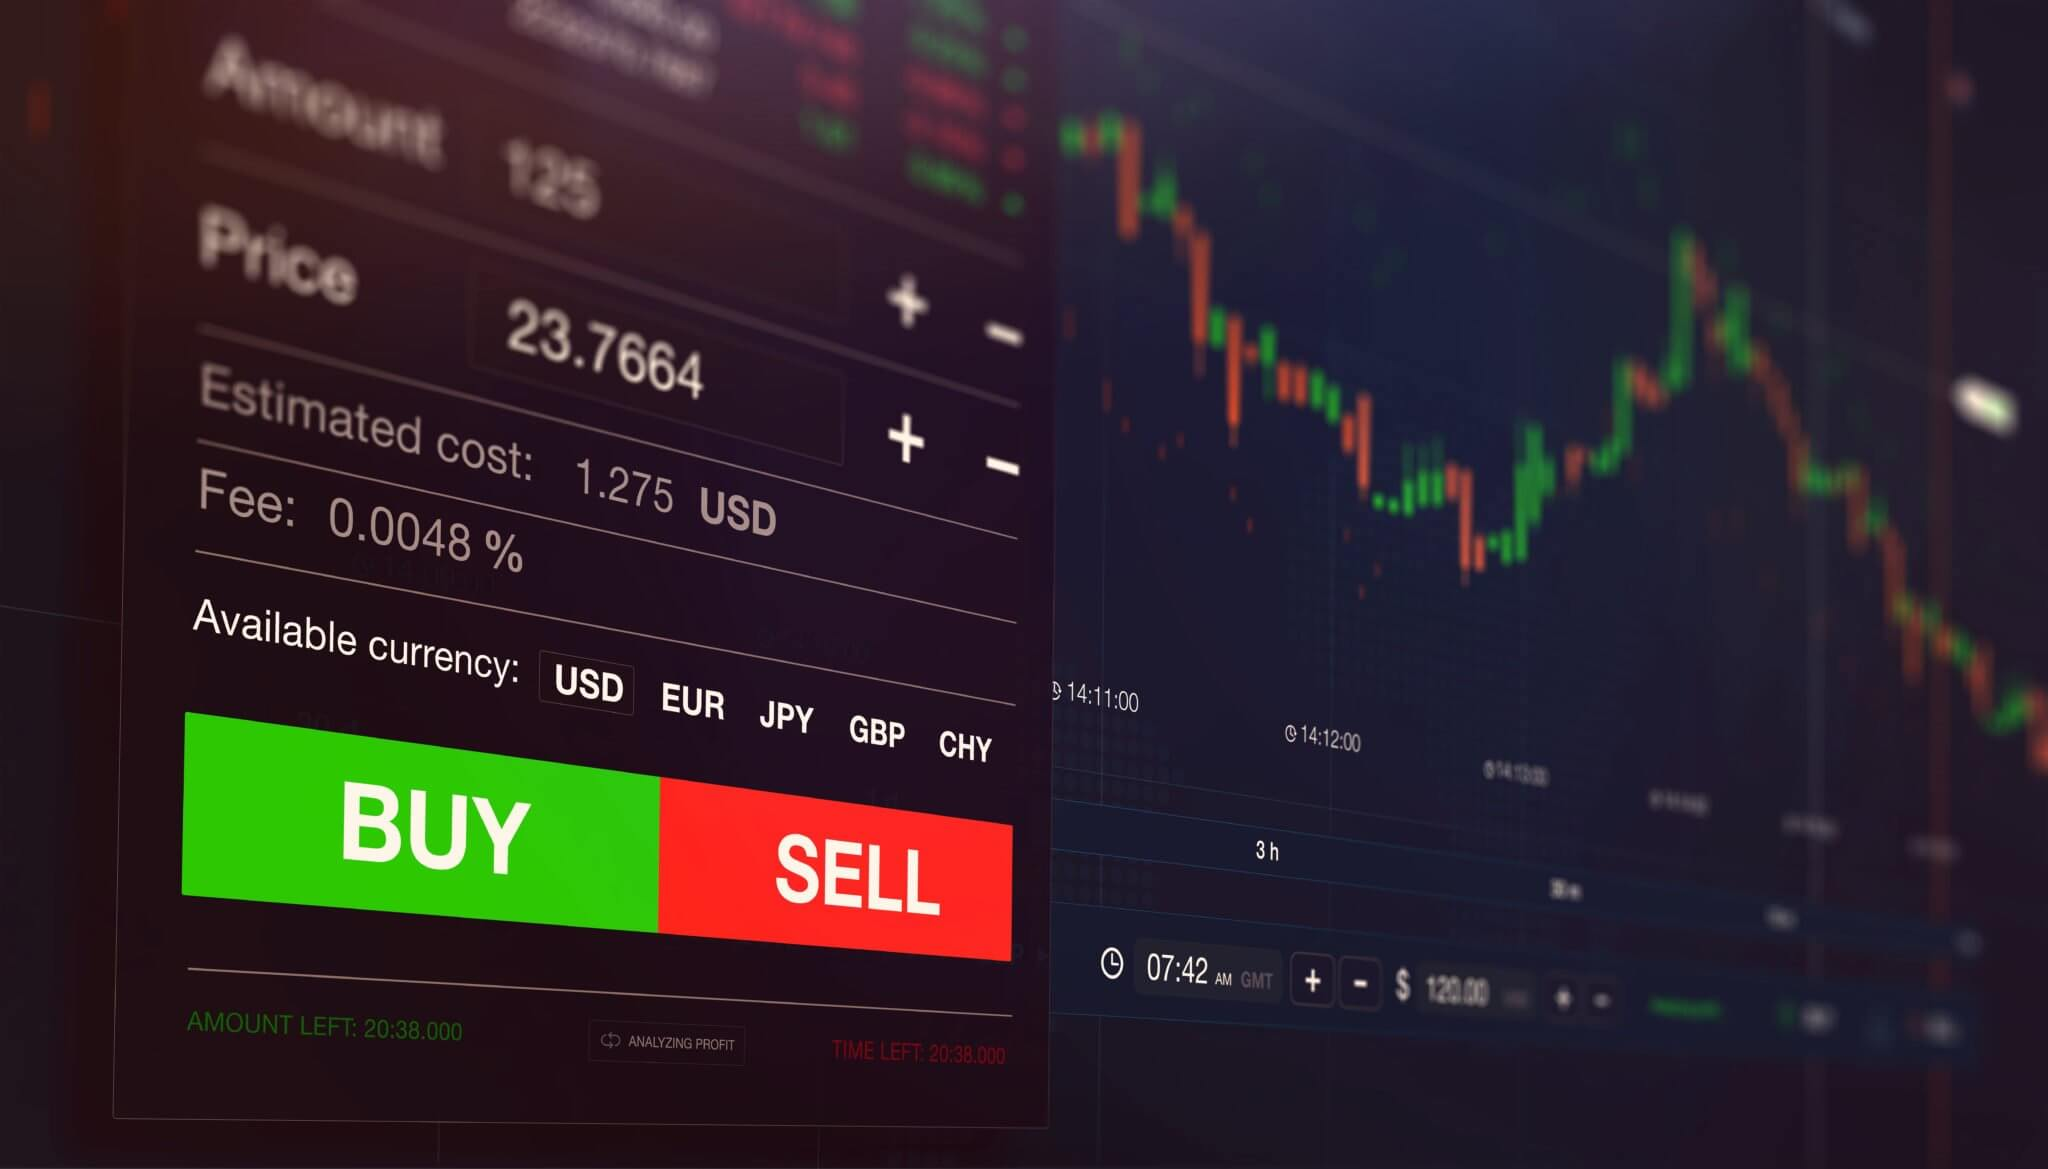 Is crypto better than stocks? Make the right choice for you